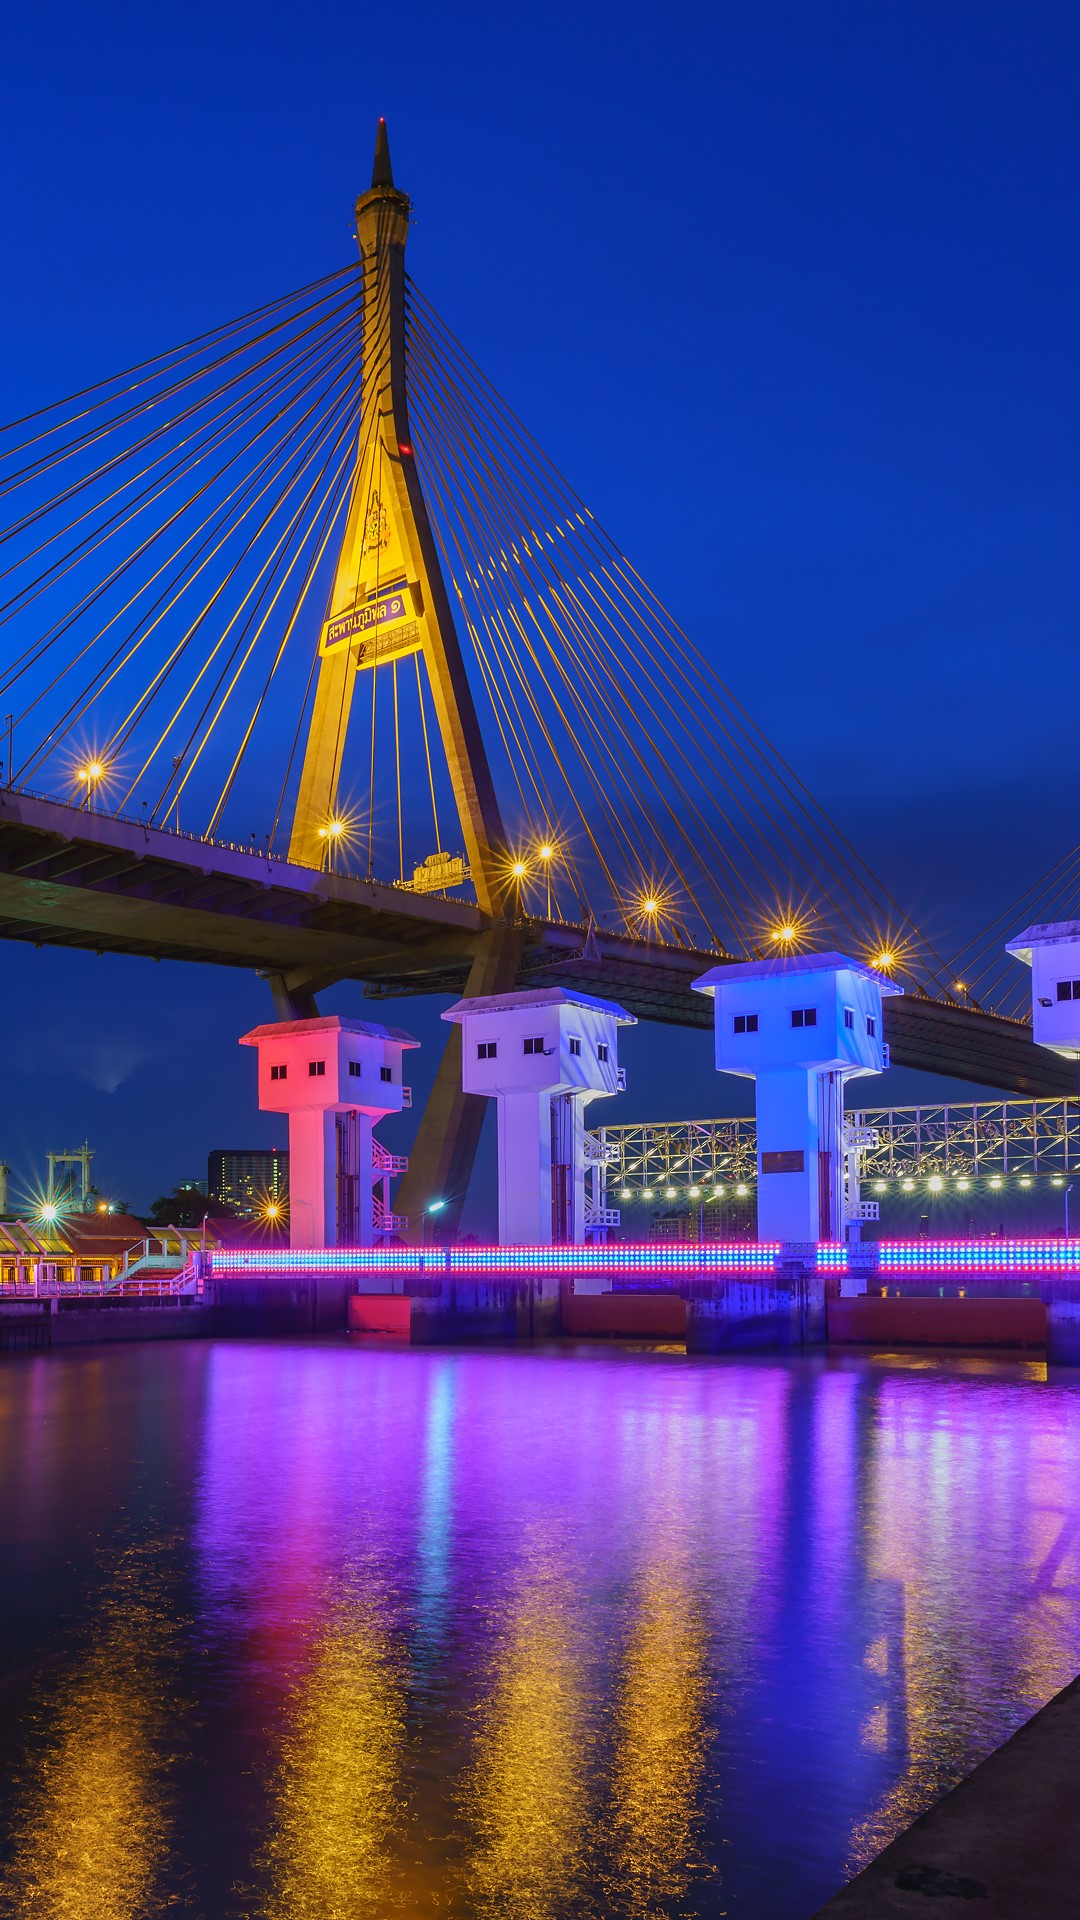 bhumibol bridge or industrial ring bridge crossing chao